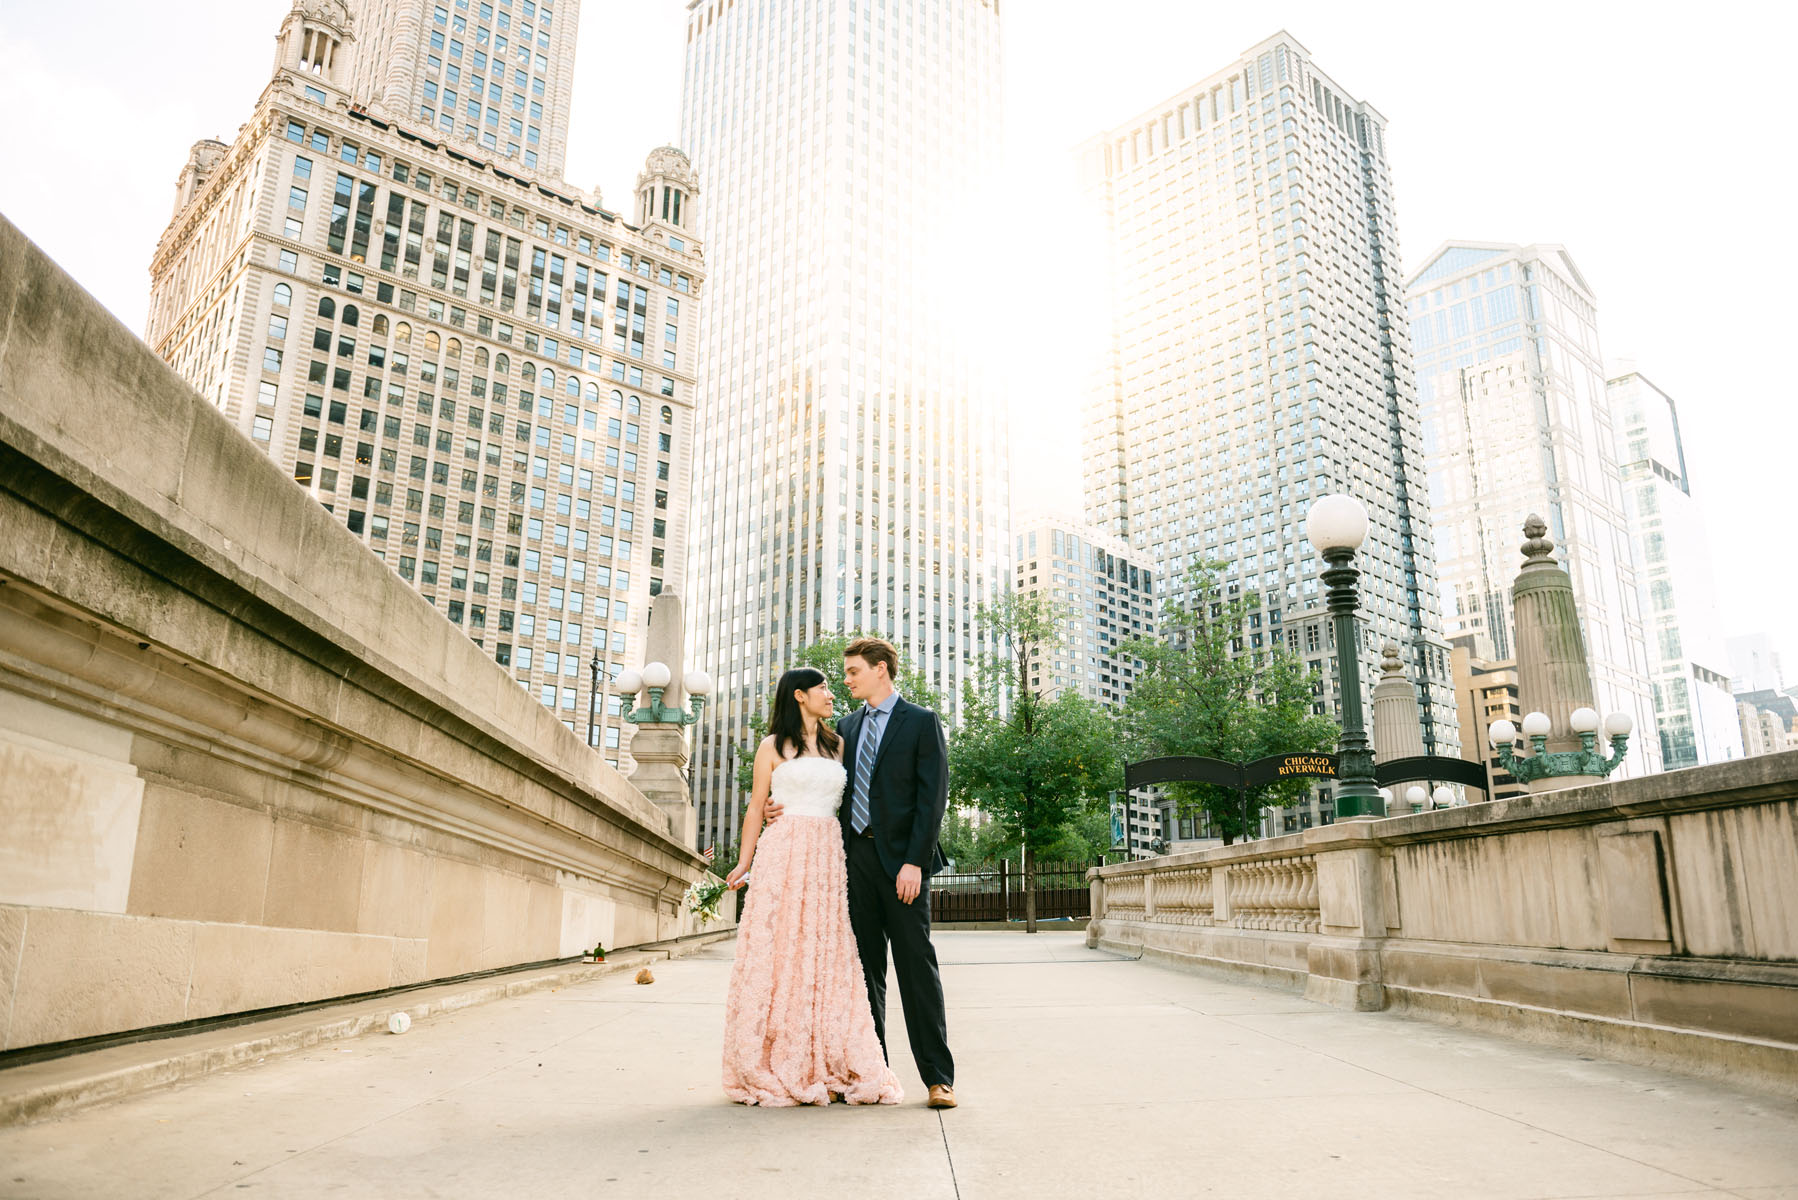 Michigan Avenue Engagement Photo